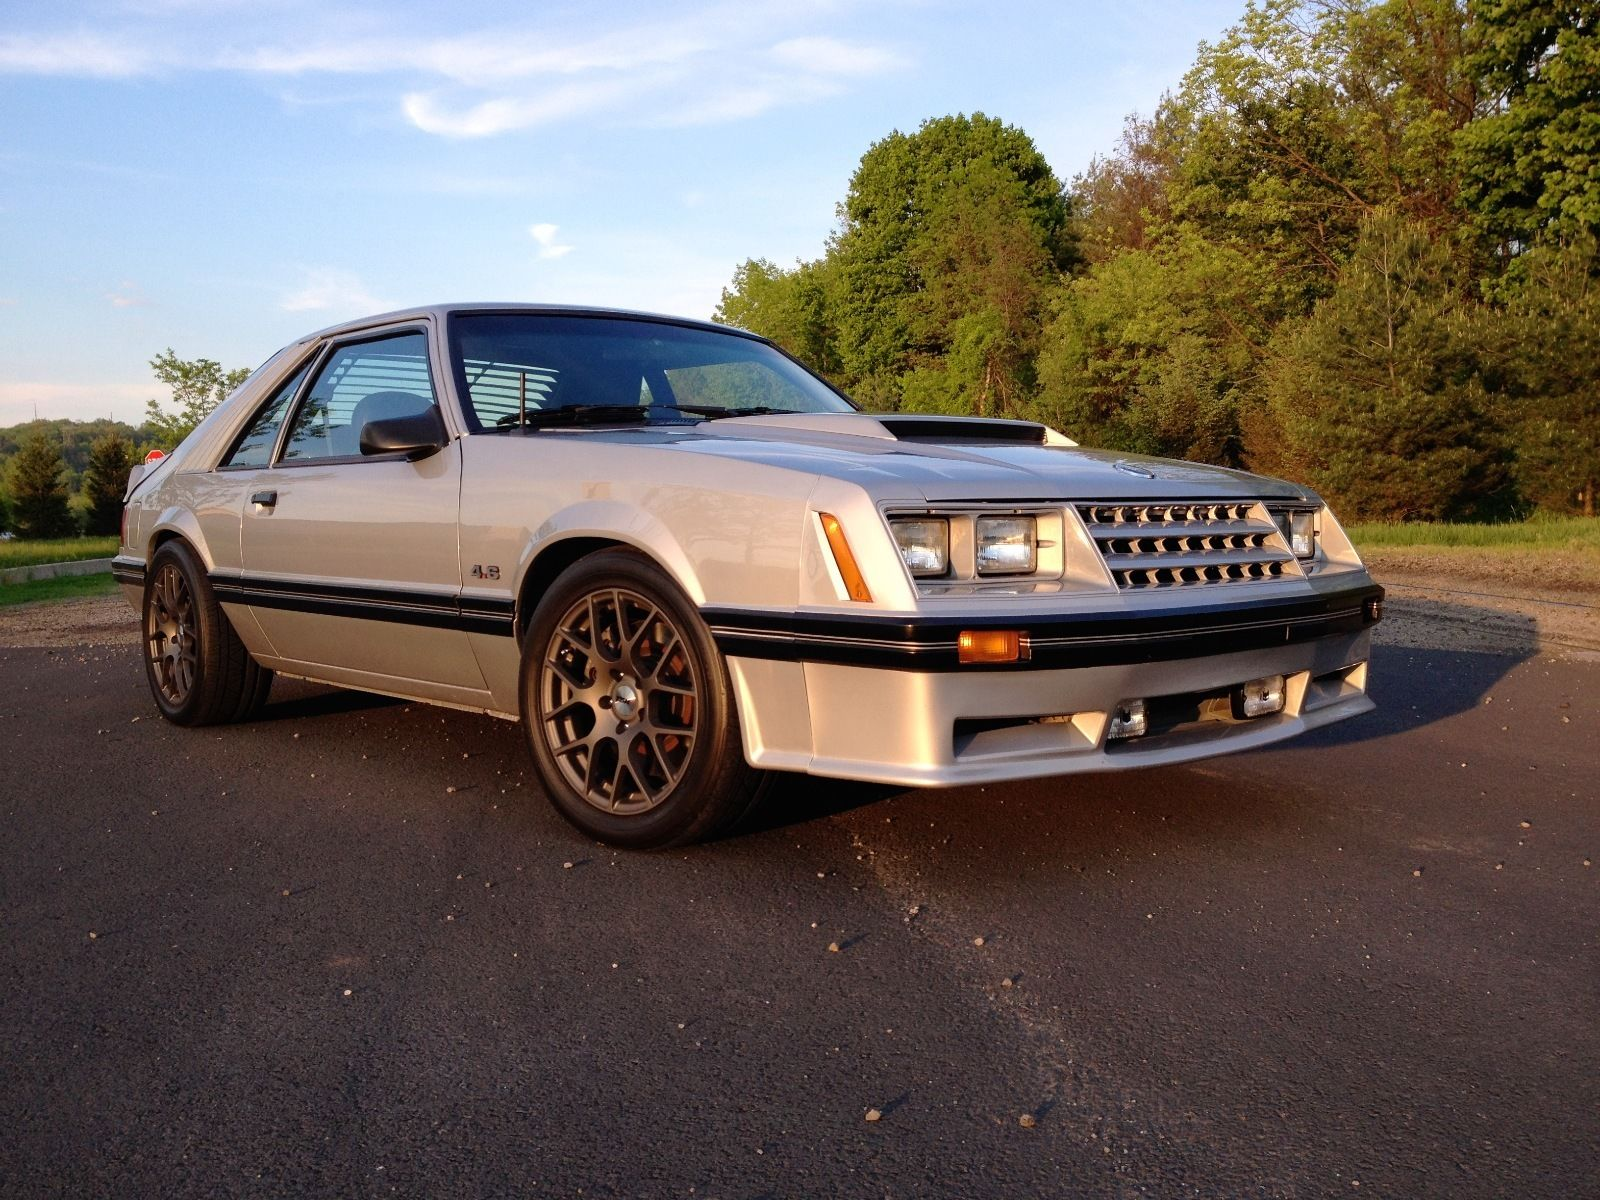 For Sale 1982 Mustang With A 4 6 L Mach 1 V8 Engine Swap Depot